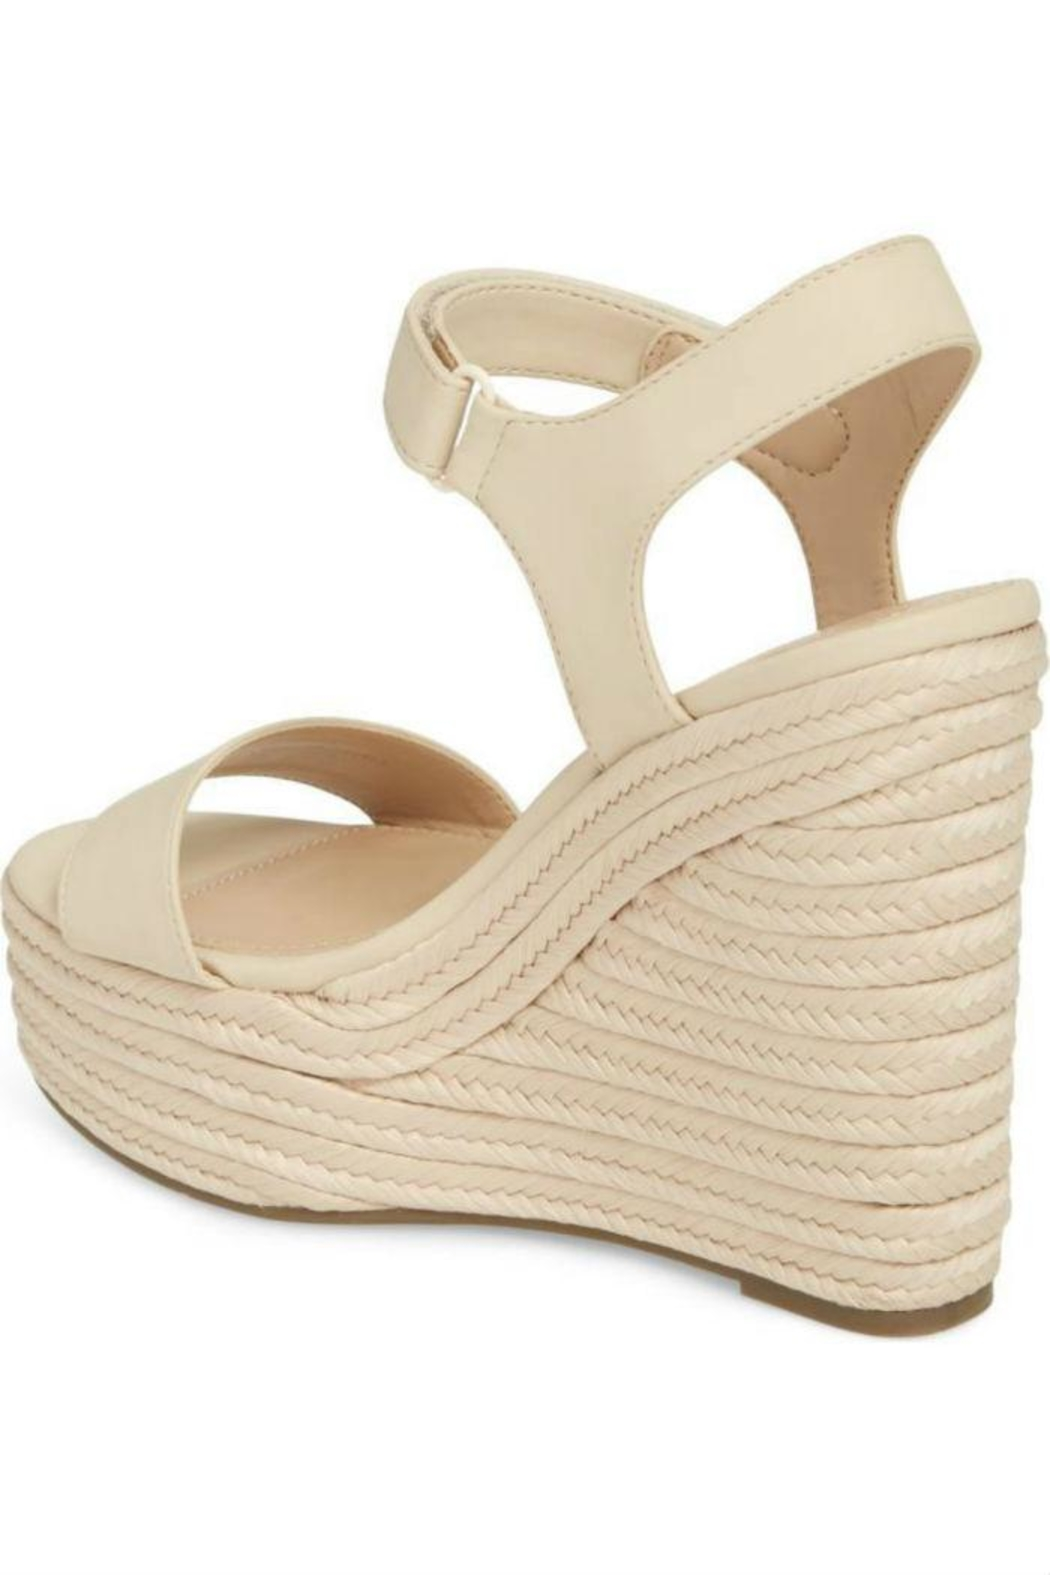 Kendall + Kylie Grand Wedge Sandal - Back Cropped Image